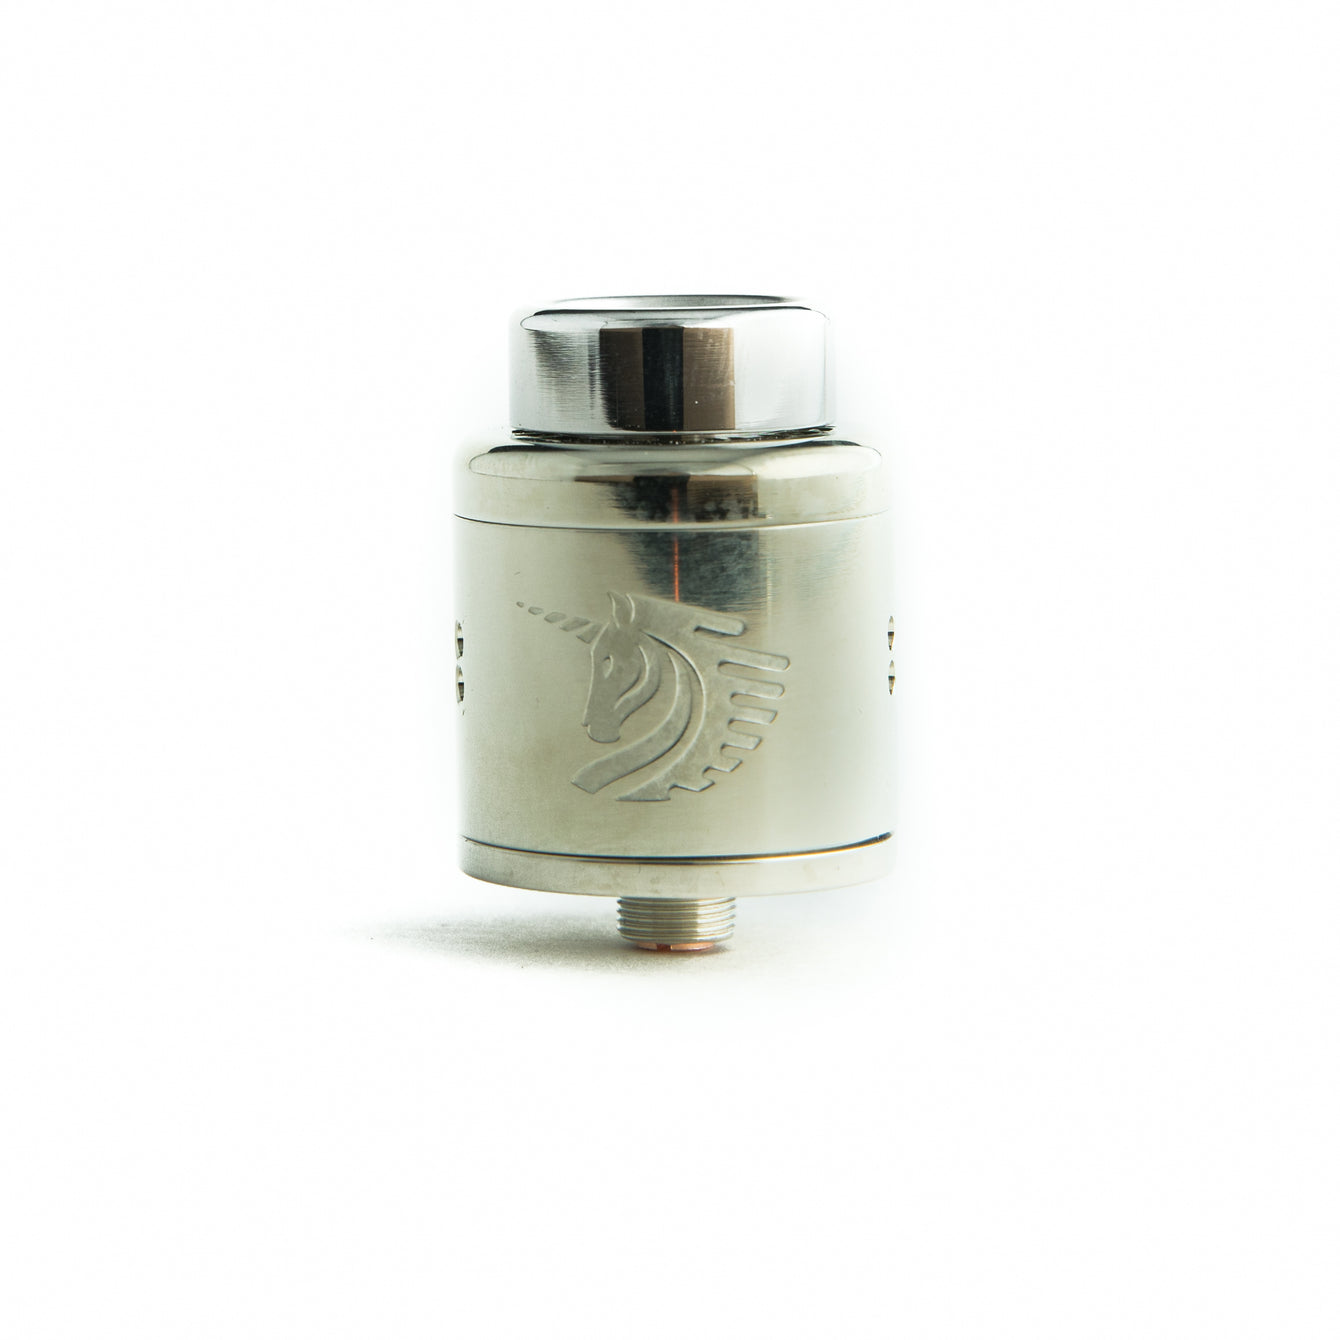 White Brass 25mm Unicorn RDA